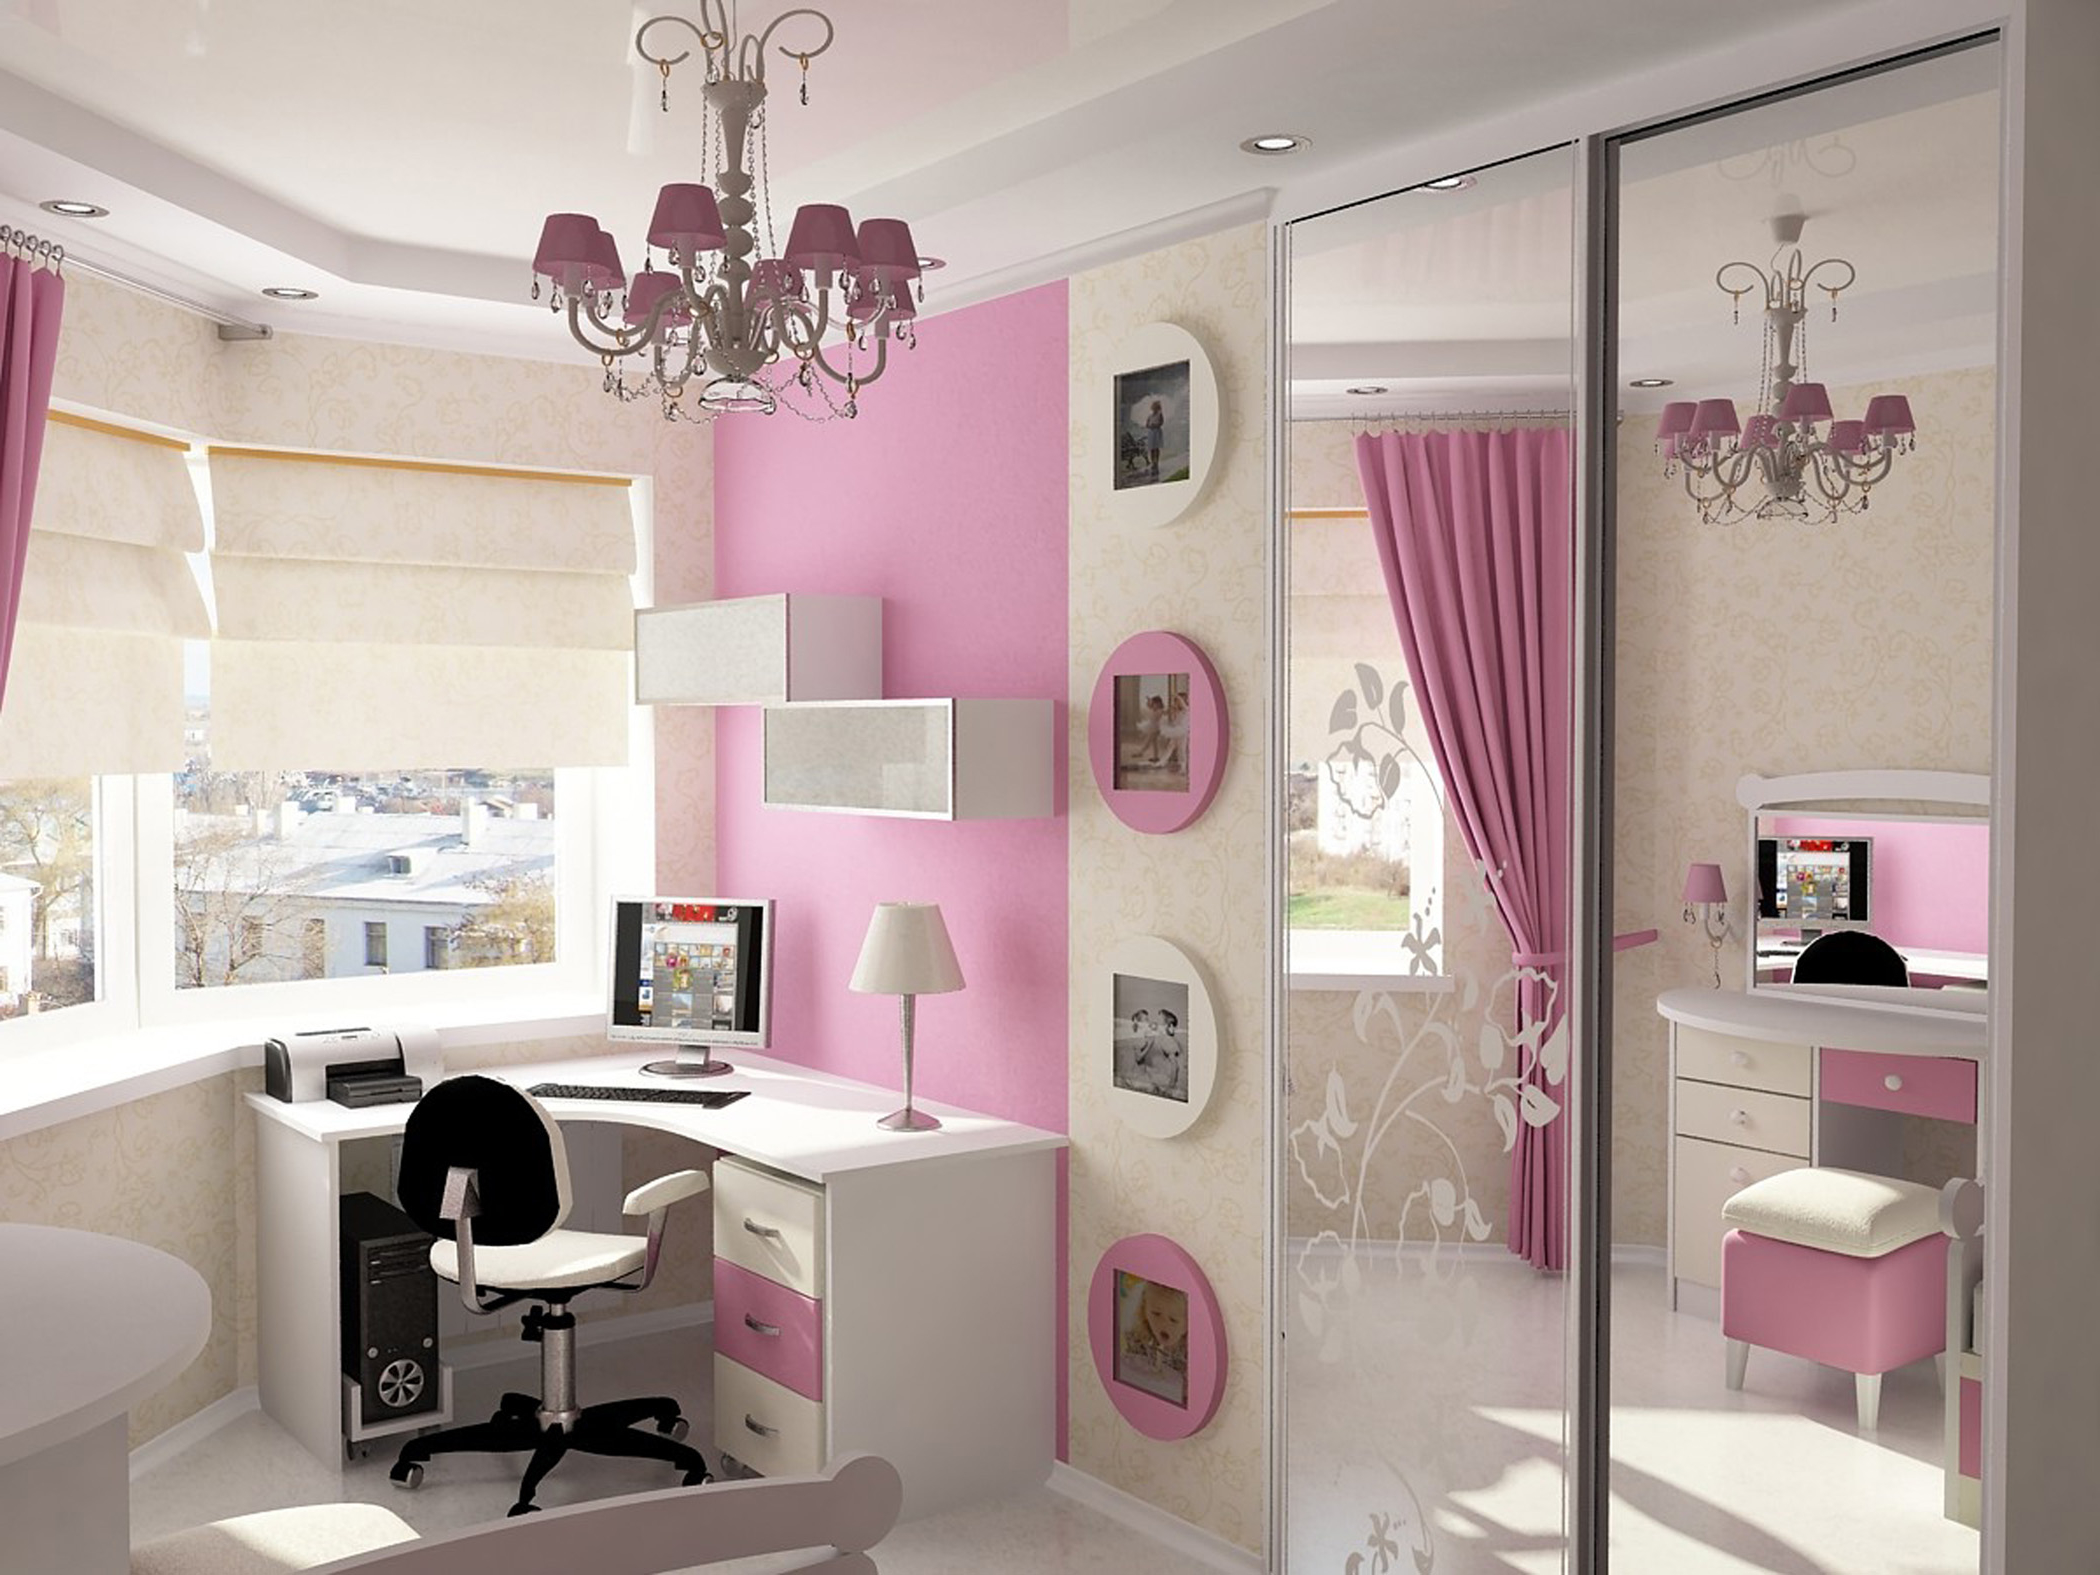 Minimalist Girls Design With White Study Table With White Desk Lamp And Pink Chandelier On The White Ceiling Along With Wardrobe With Sliding Door With Mirror Cool Design Bedroom Ideas (View 3 of 25)